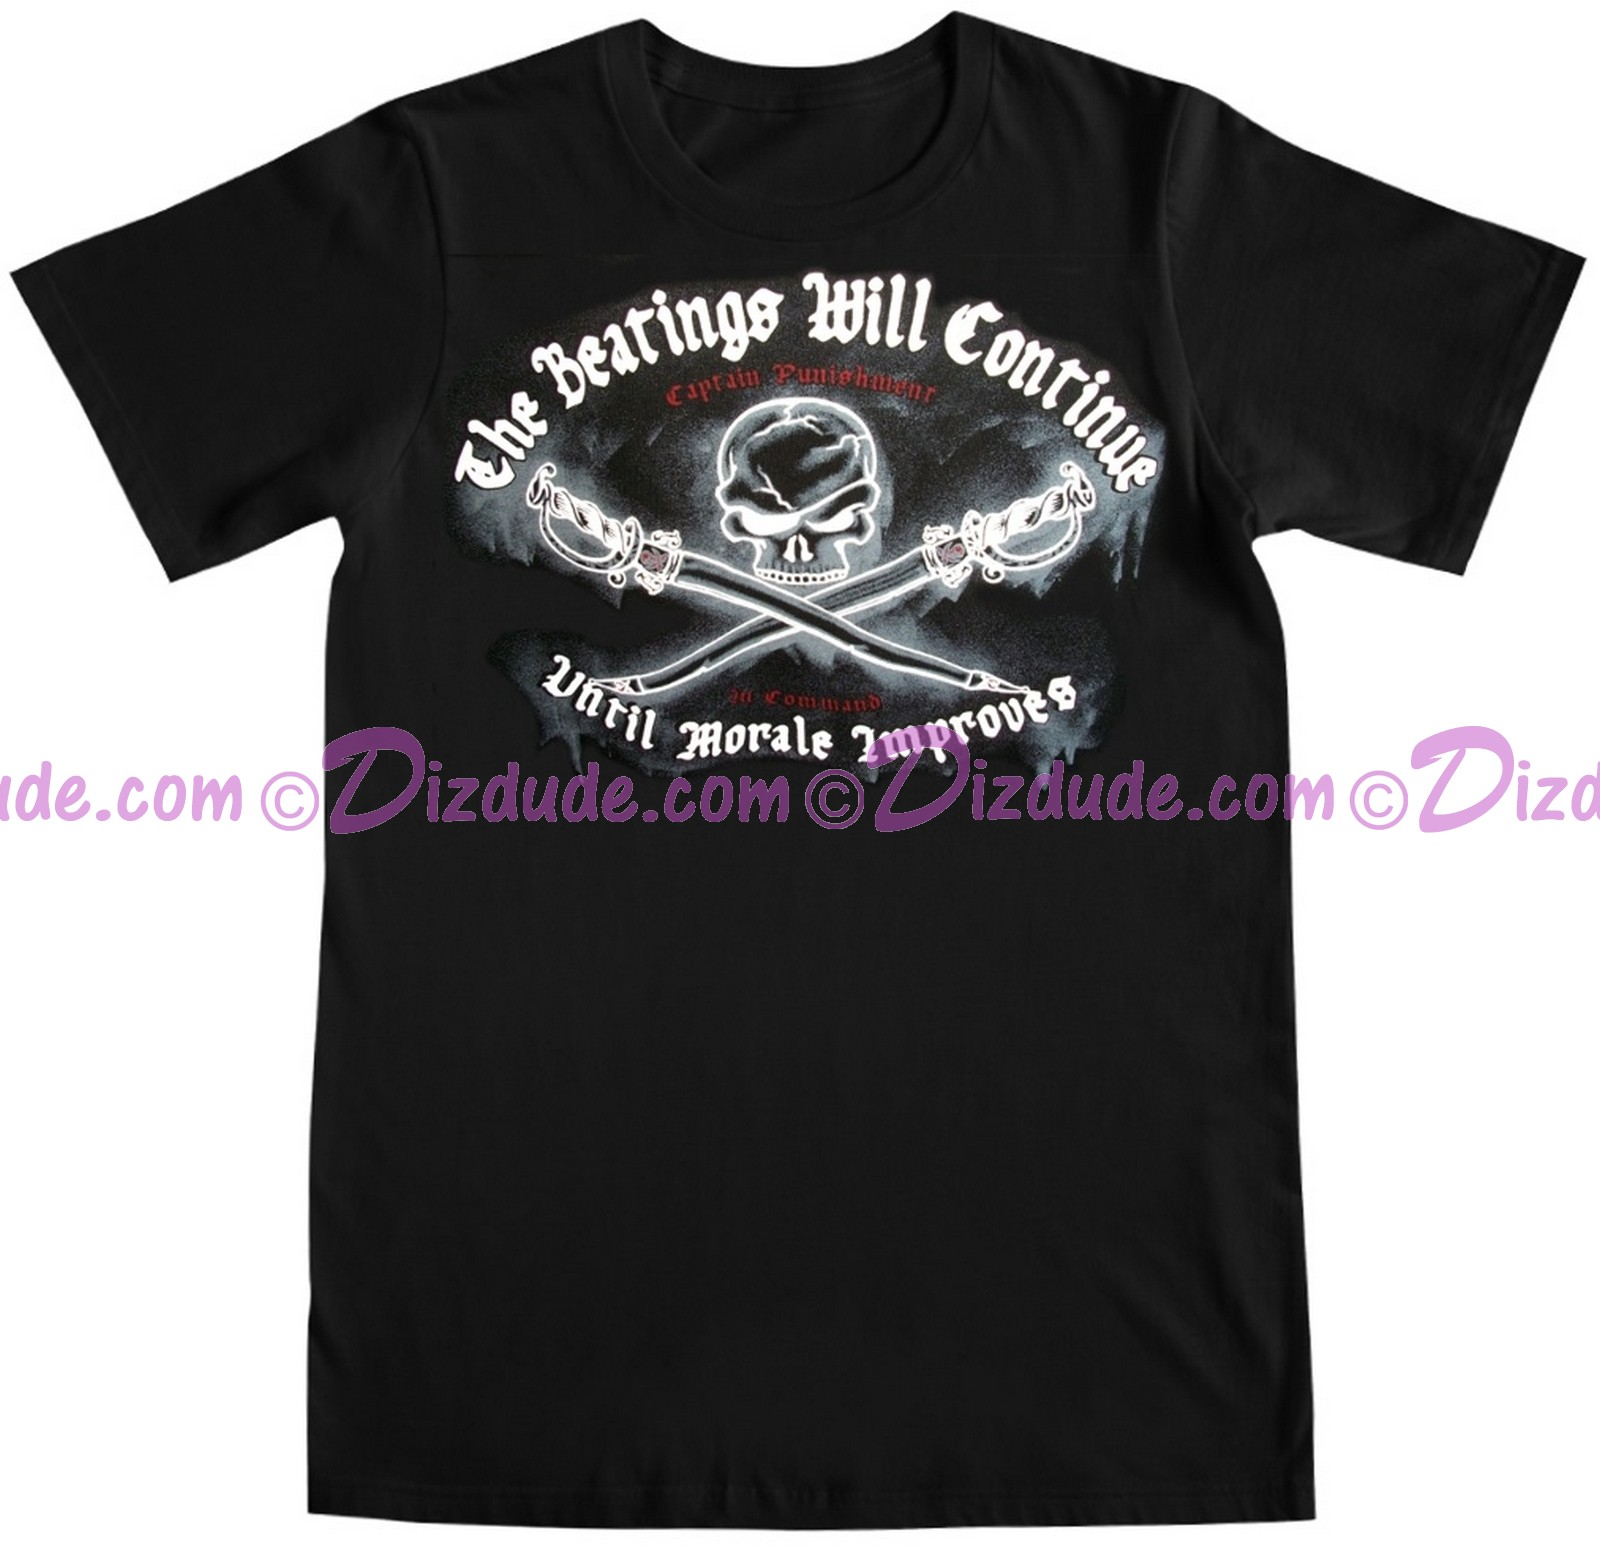 "(SOLD OUT) Pirates of the Caribbean ""The Beatings Will Continue Until Moral Improves"" T-shirt (Tee, Tshirt or T shirt)"